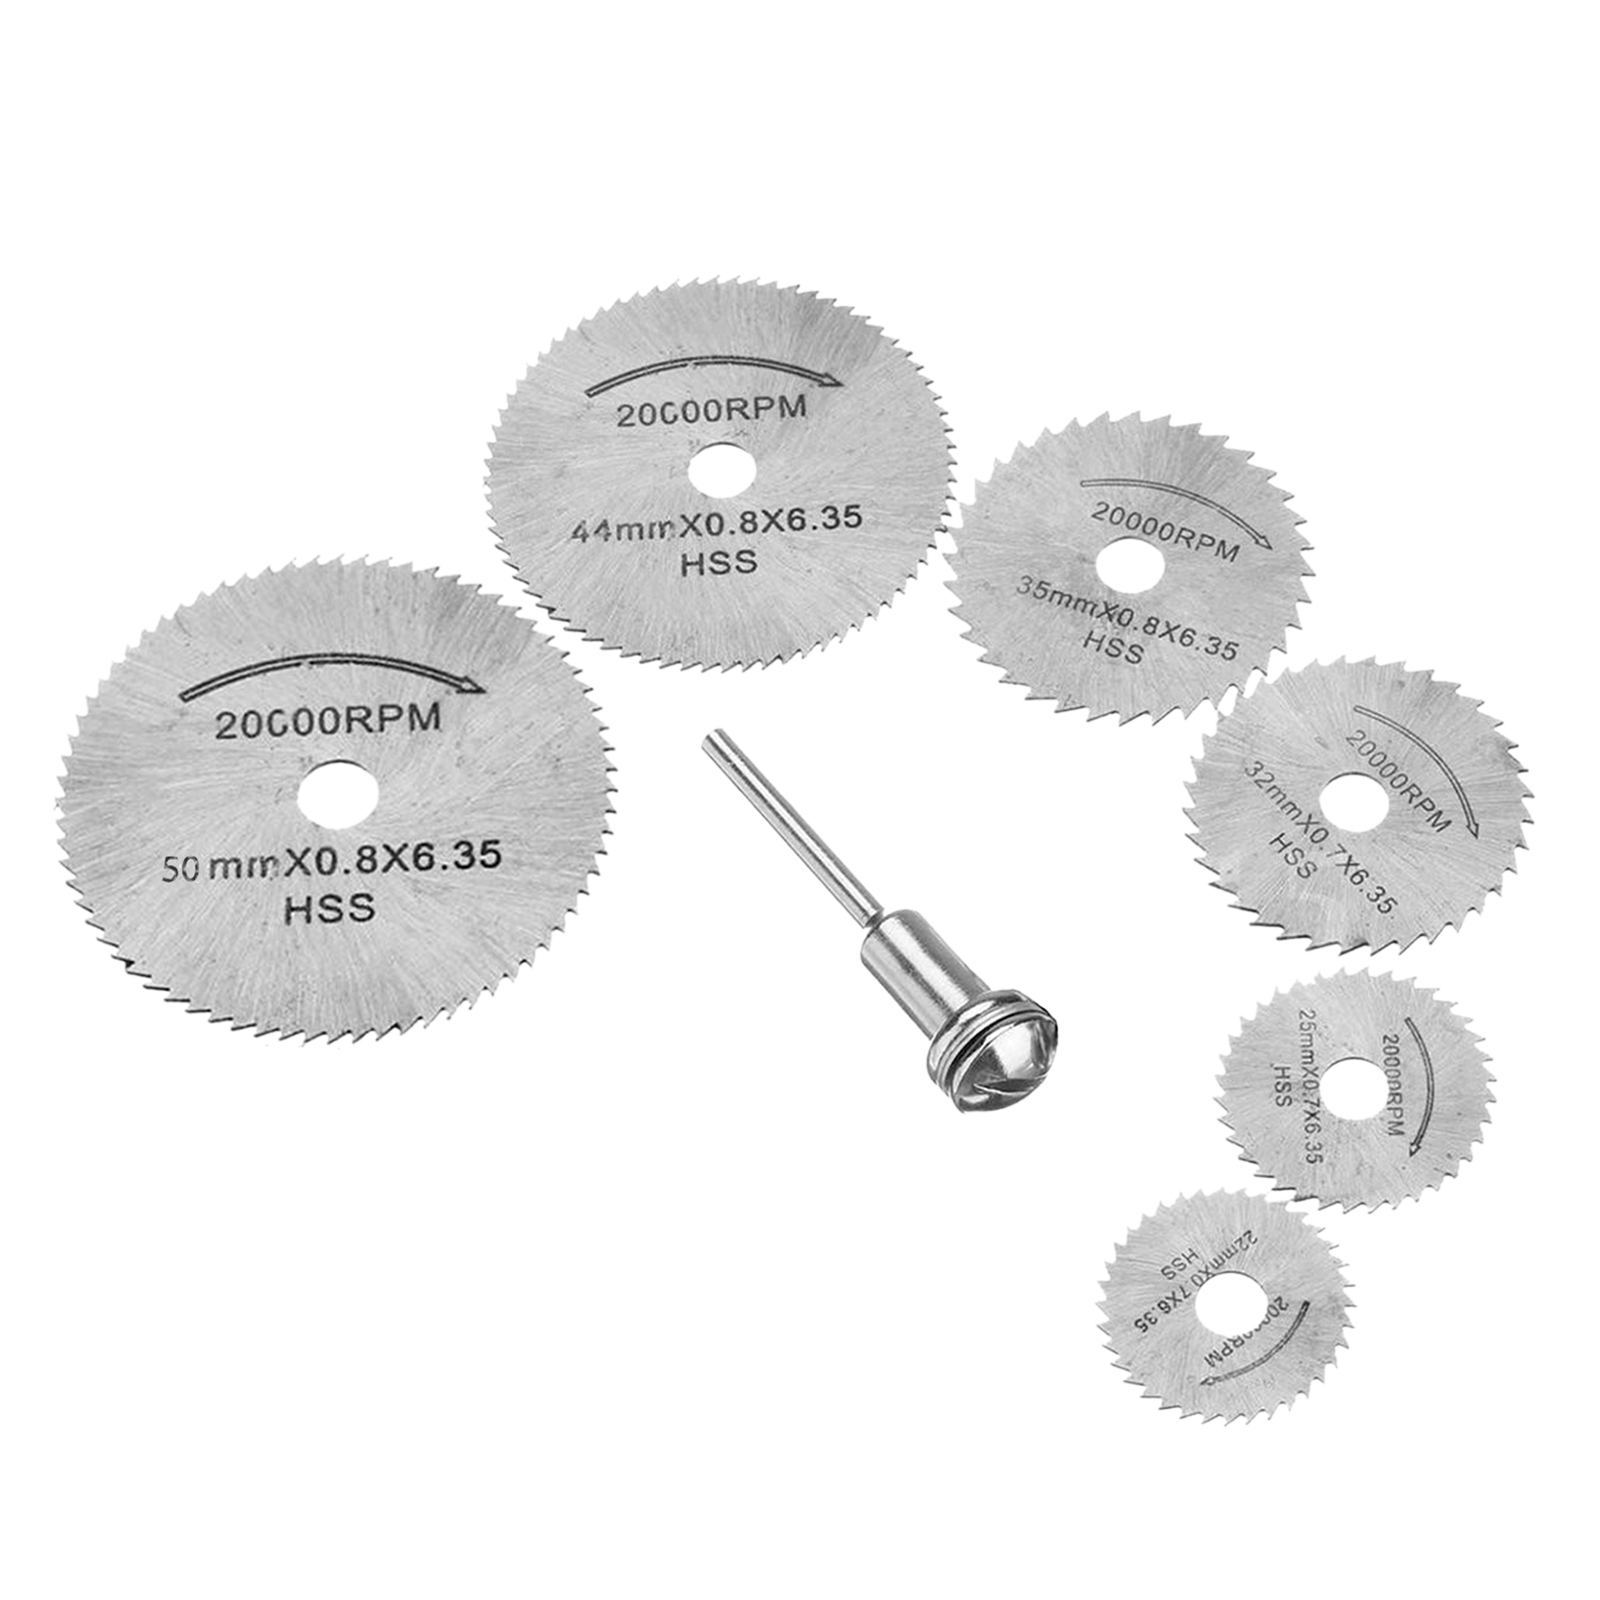 Circular Cutting Saw Blade Discs And 2 Mandrels Drill Attachment For Rotary Tool